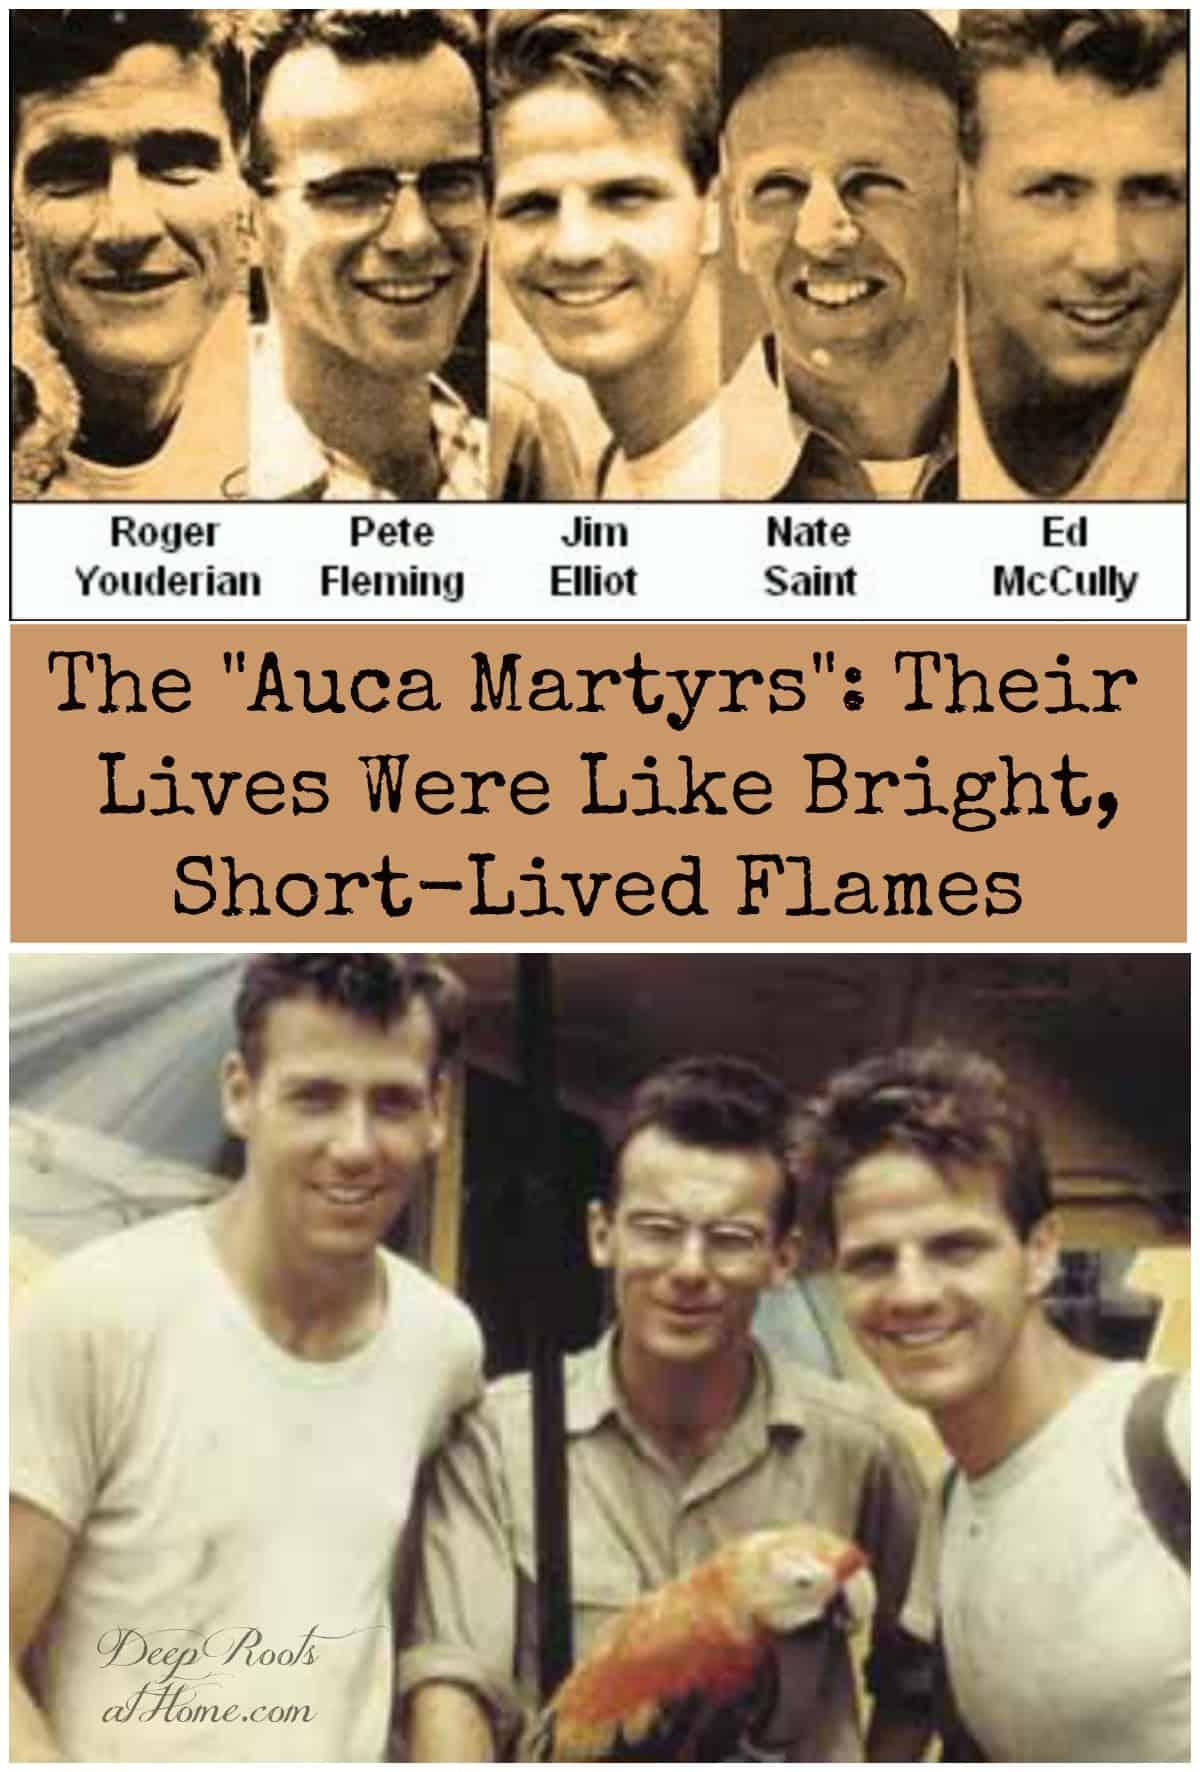 "The ""Auca Martyrs"": Their Lives Were Like Bright, Short-Lived Flames. jim elliott, nate saint, roger youderian, pete fleming, ed Mccully"